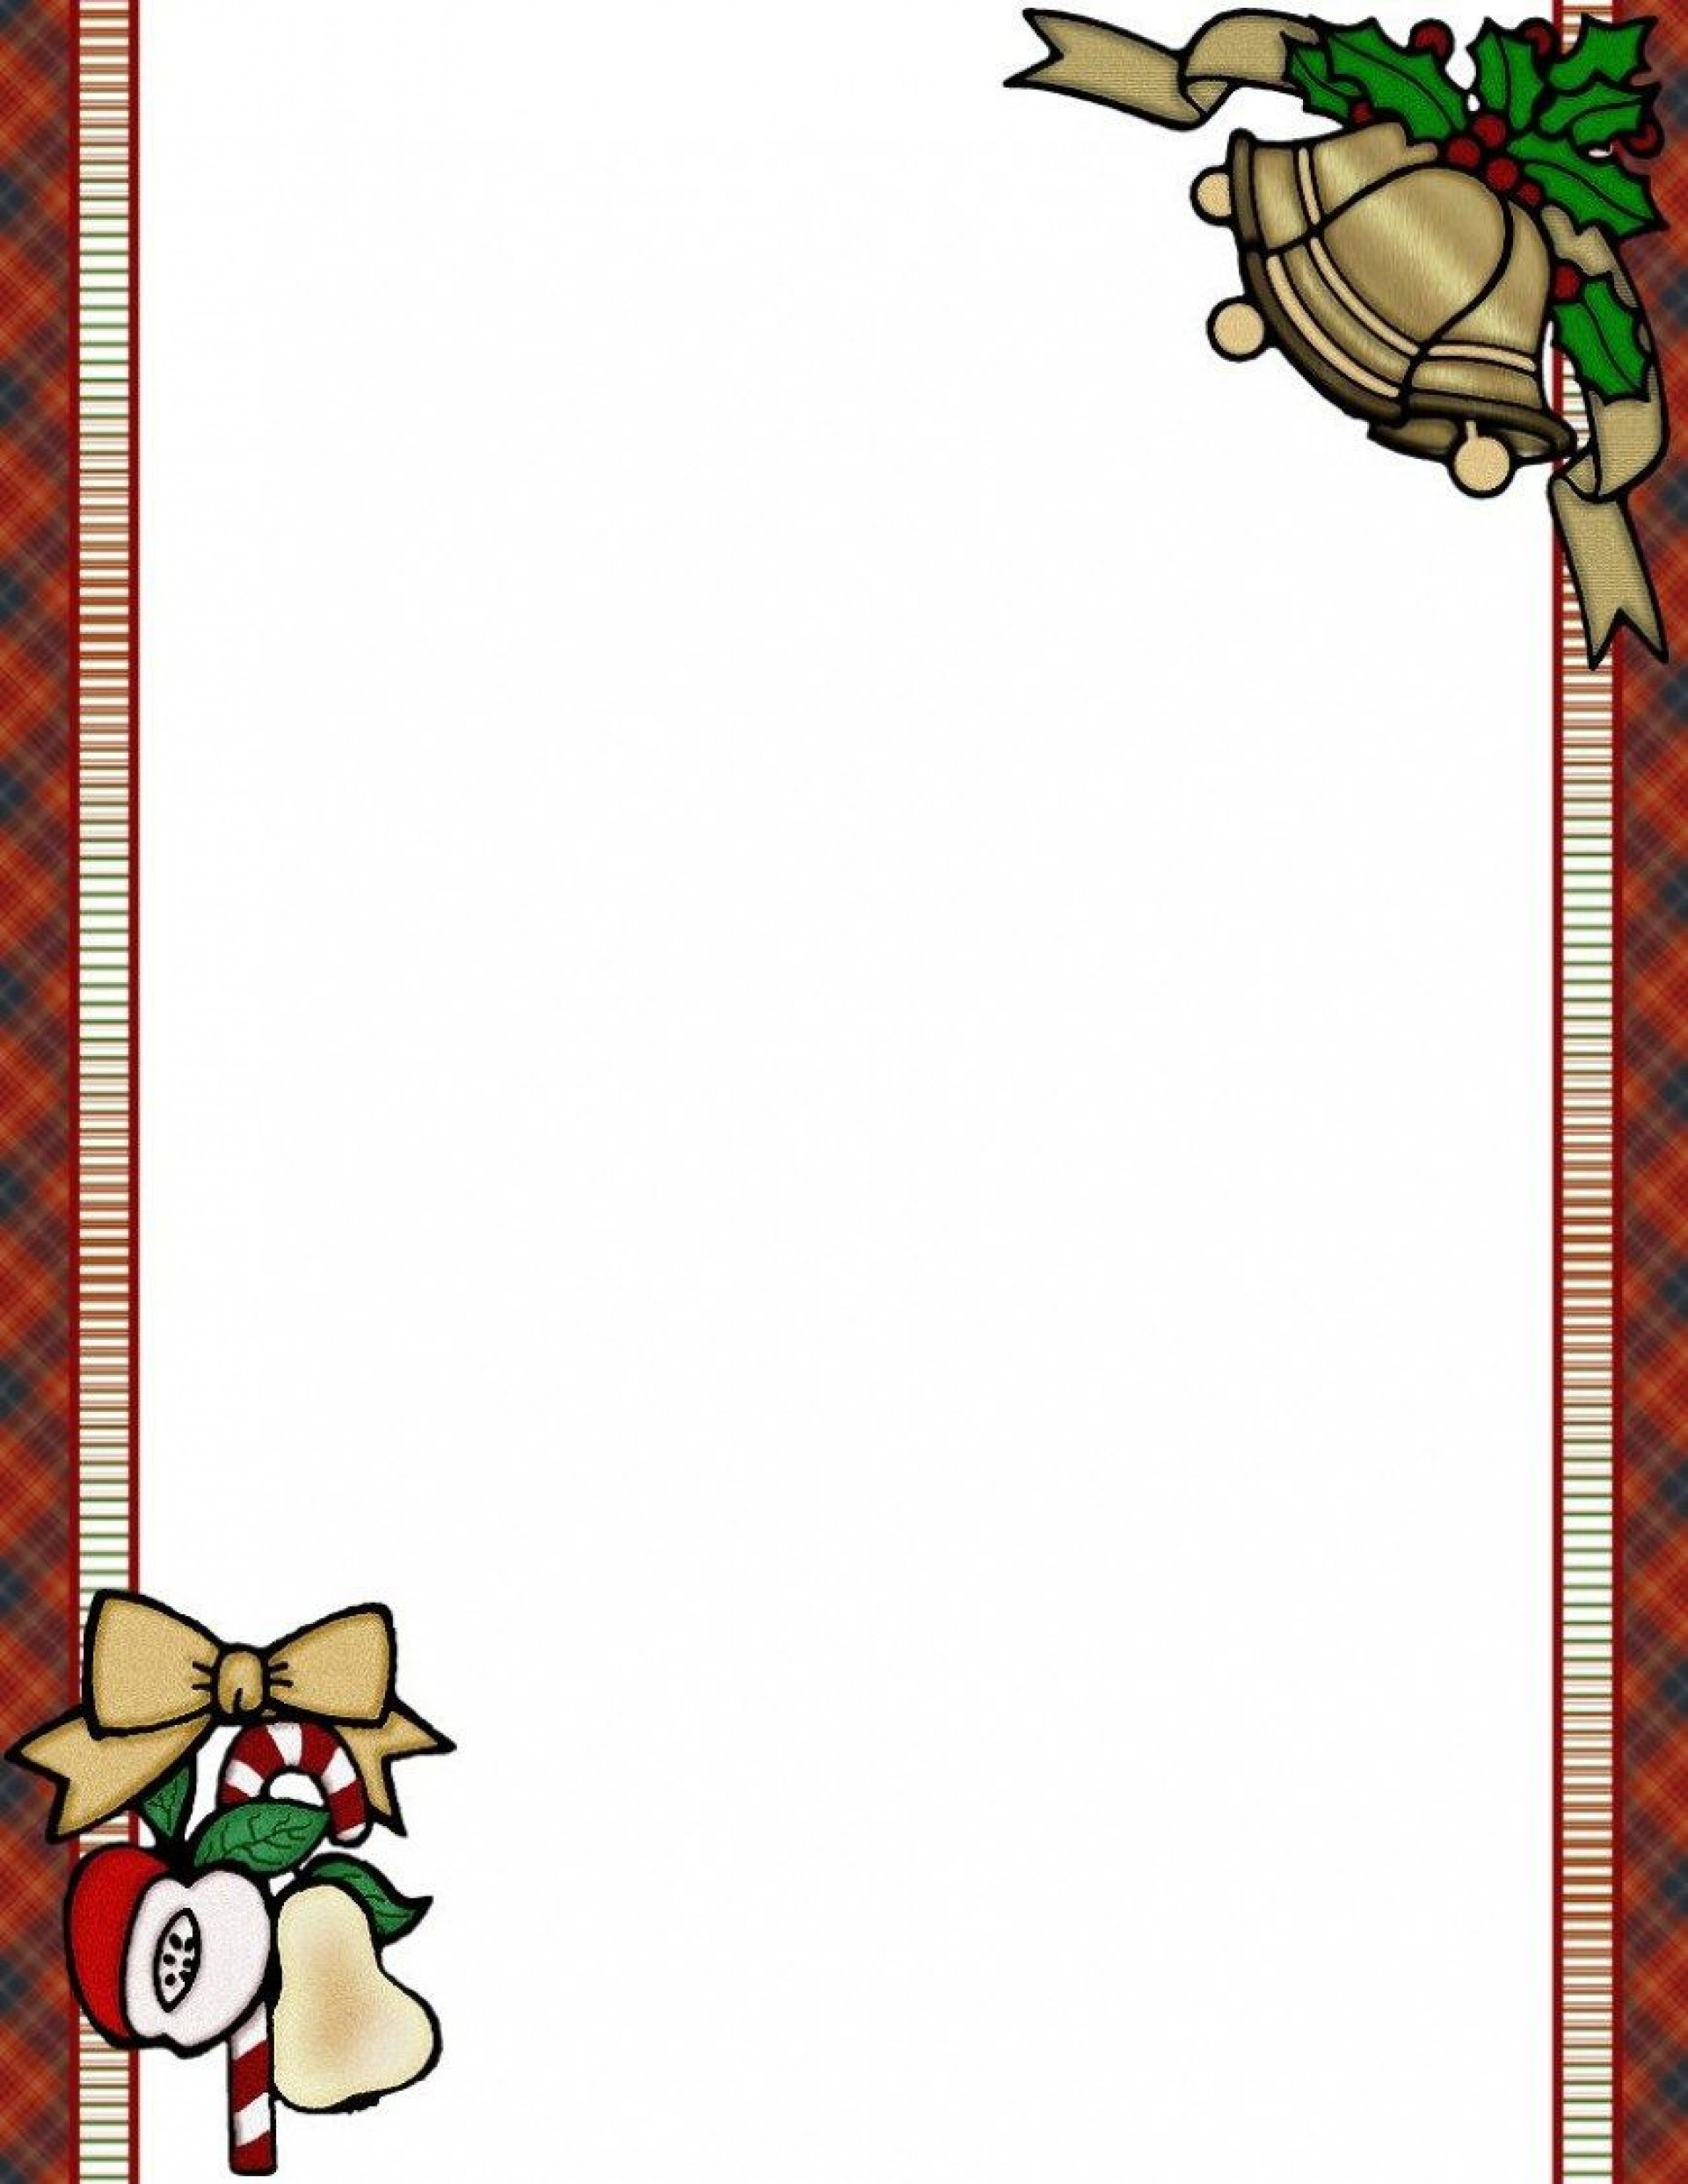 010 Wondrou Christma Stationery Template Word Free Inspiration  Religiou For Downloadable1920